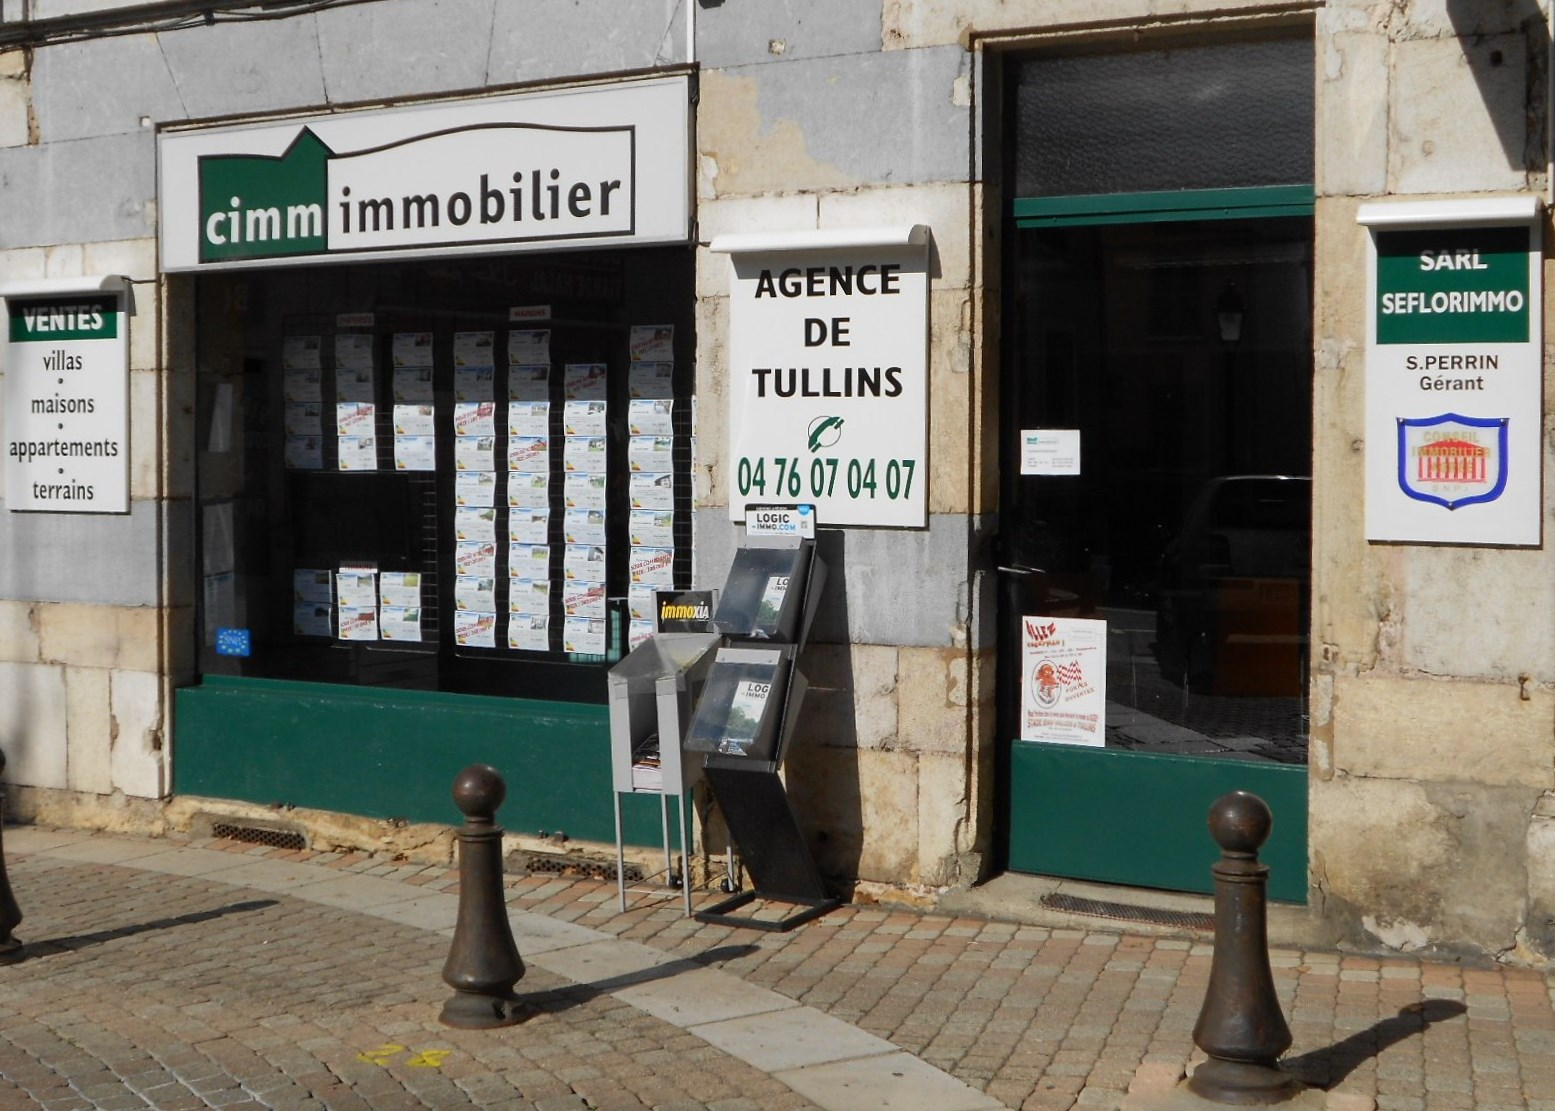 CIMM IMMOBILIER - TULLINS